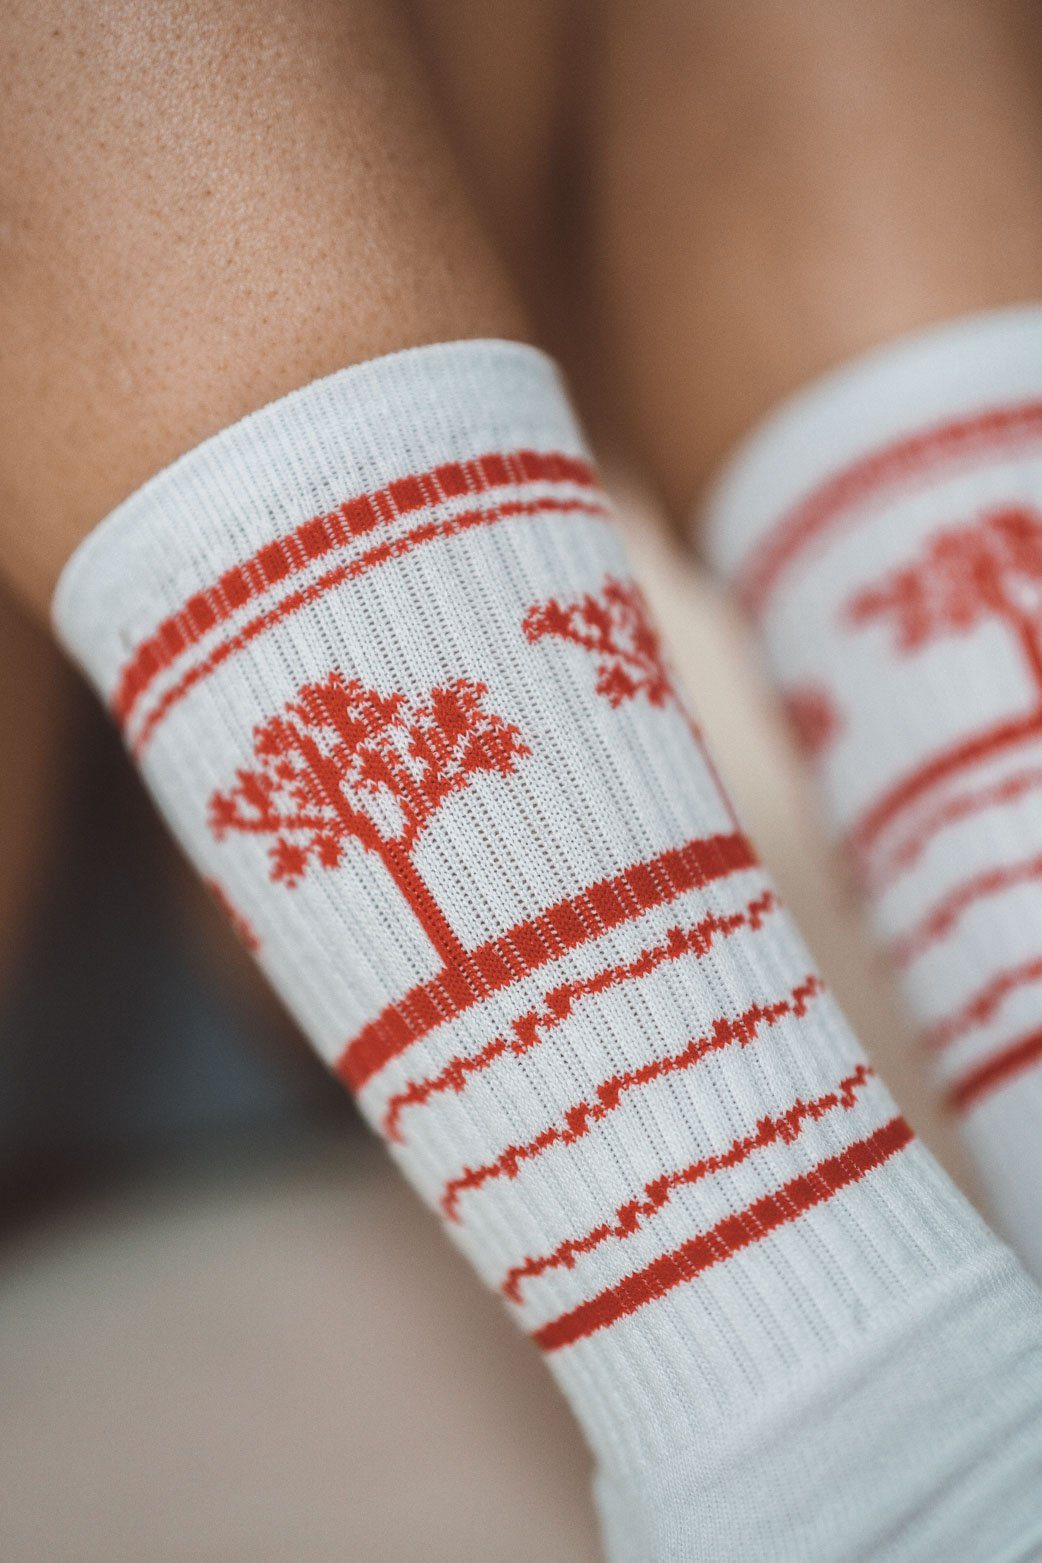 Joshua Tree Socks - The Parks Apparel